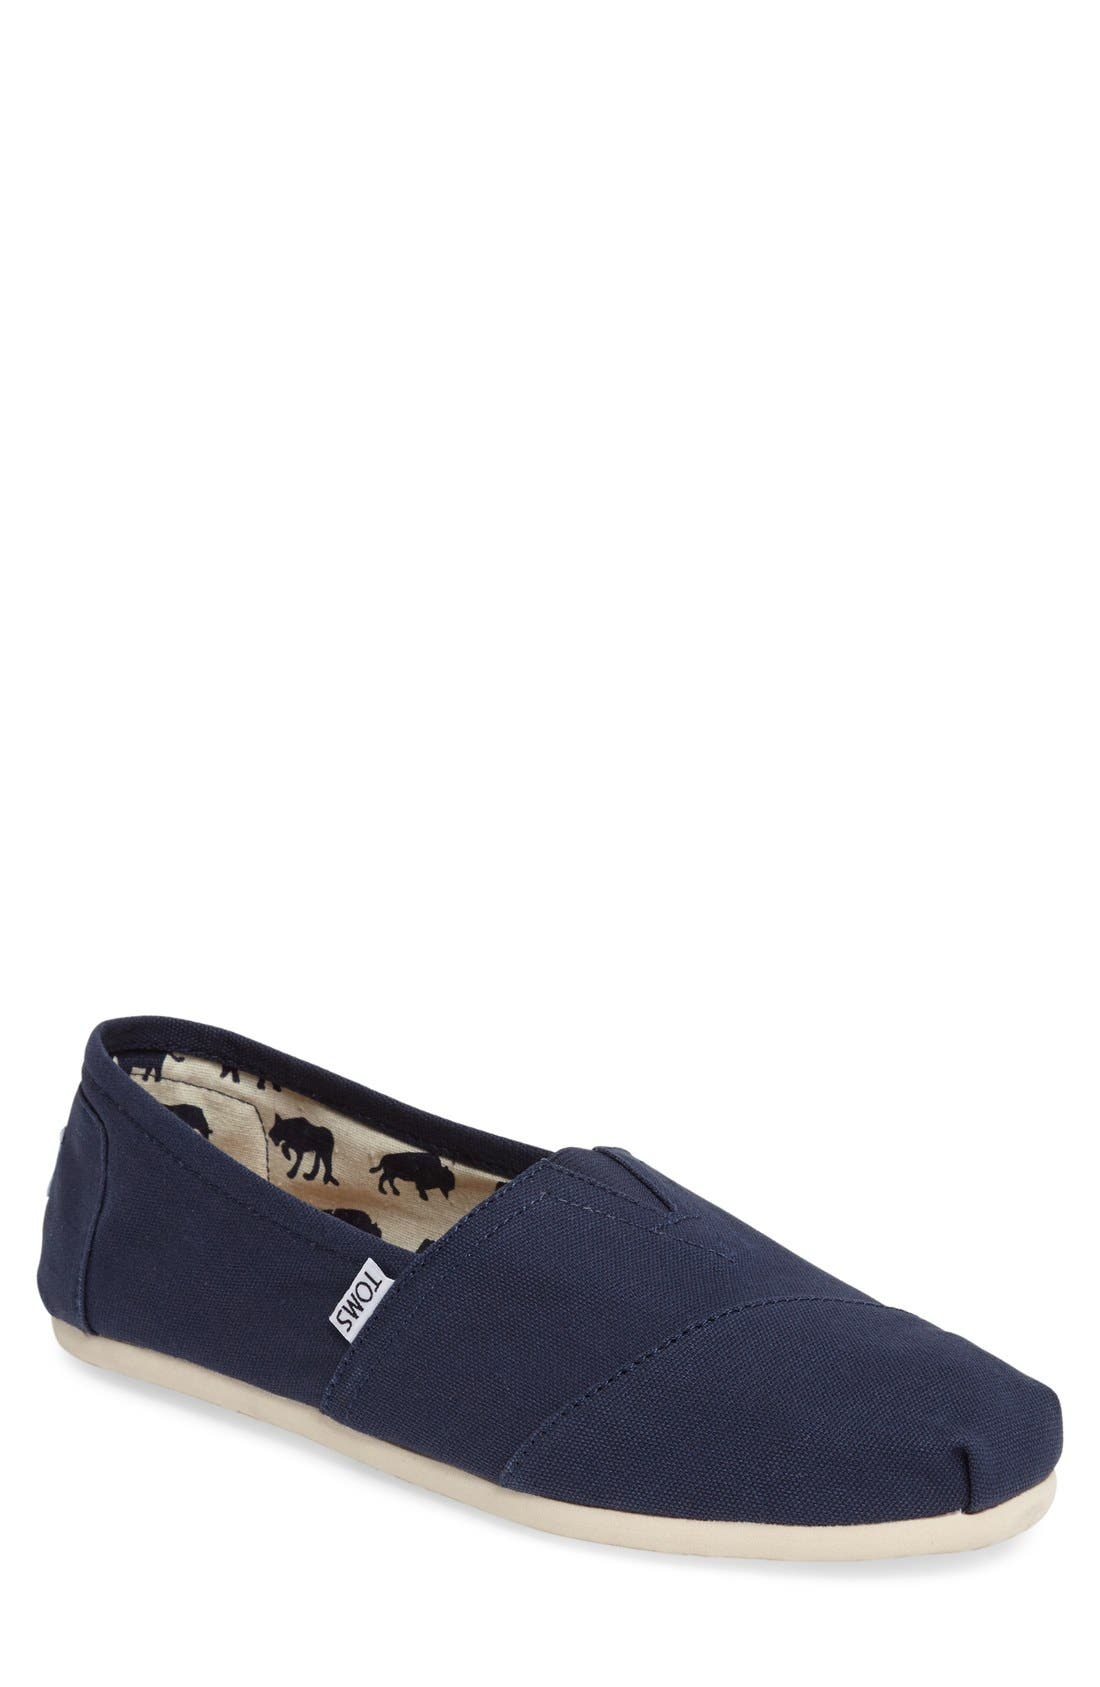 TOMS 'Classic' Canvas Slip-On   (Men)